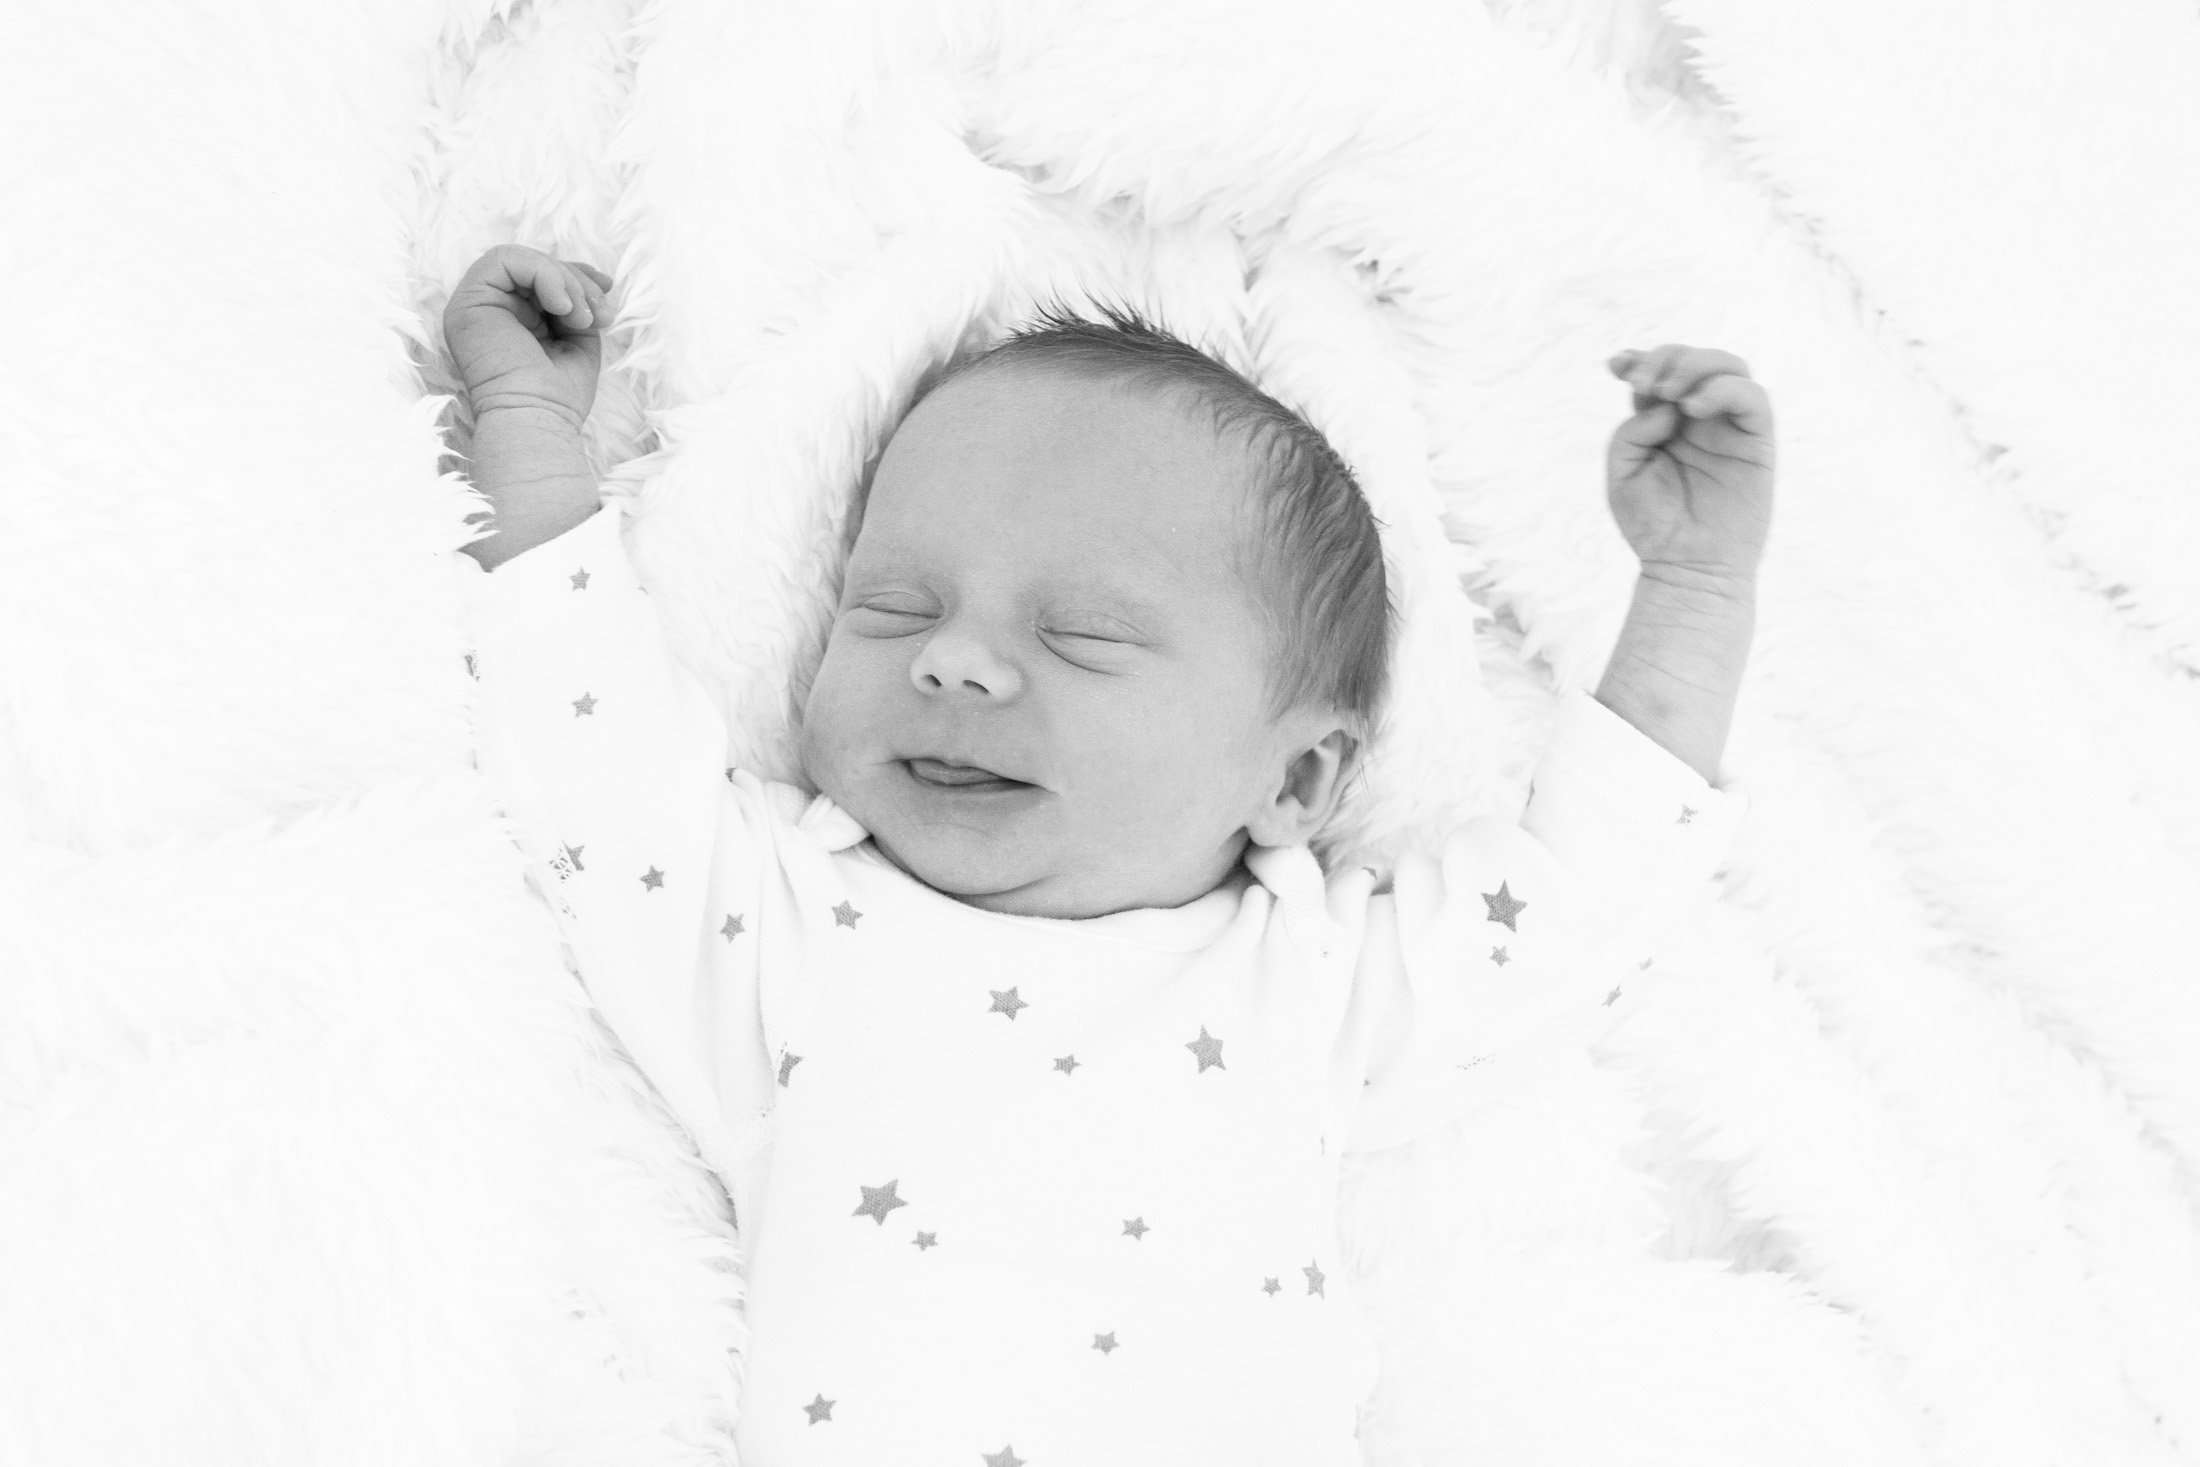 A portrait photo taken at home of a newborn baby asleep on a white blanket, taken in Chichester, Sussex